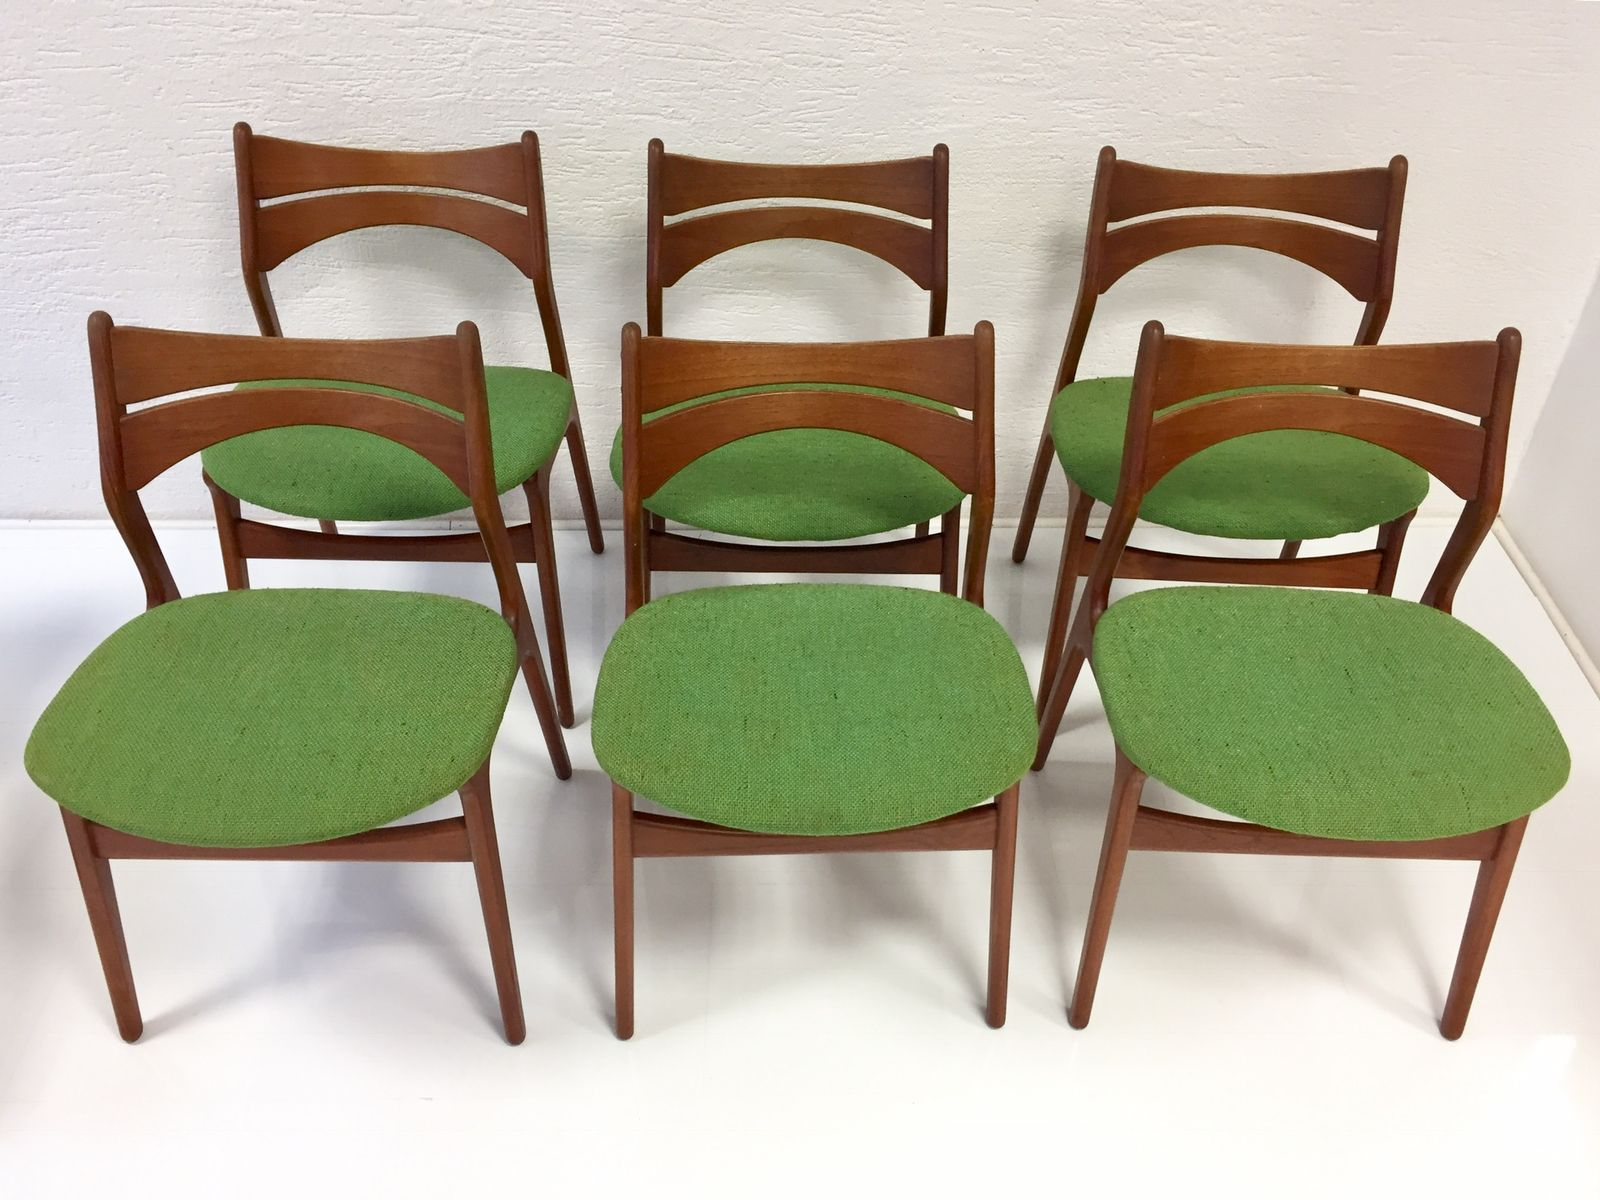 Amazing Vintage Model 310 Danish Teak Chairs By Erik Buch For Chr. Christiansen,  Set Of 6